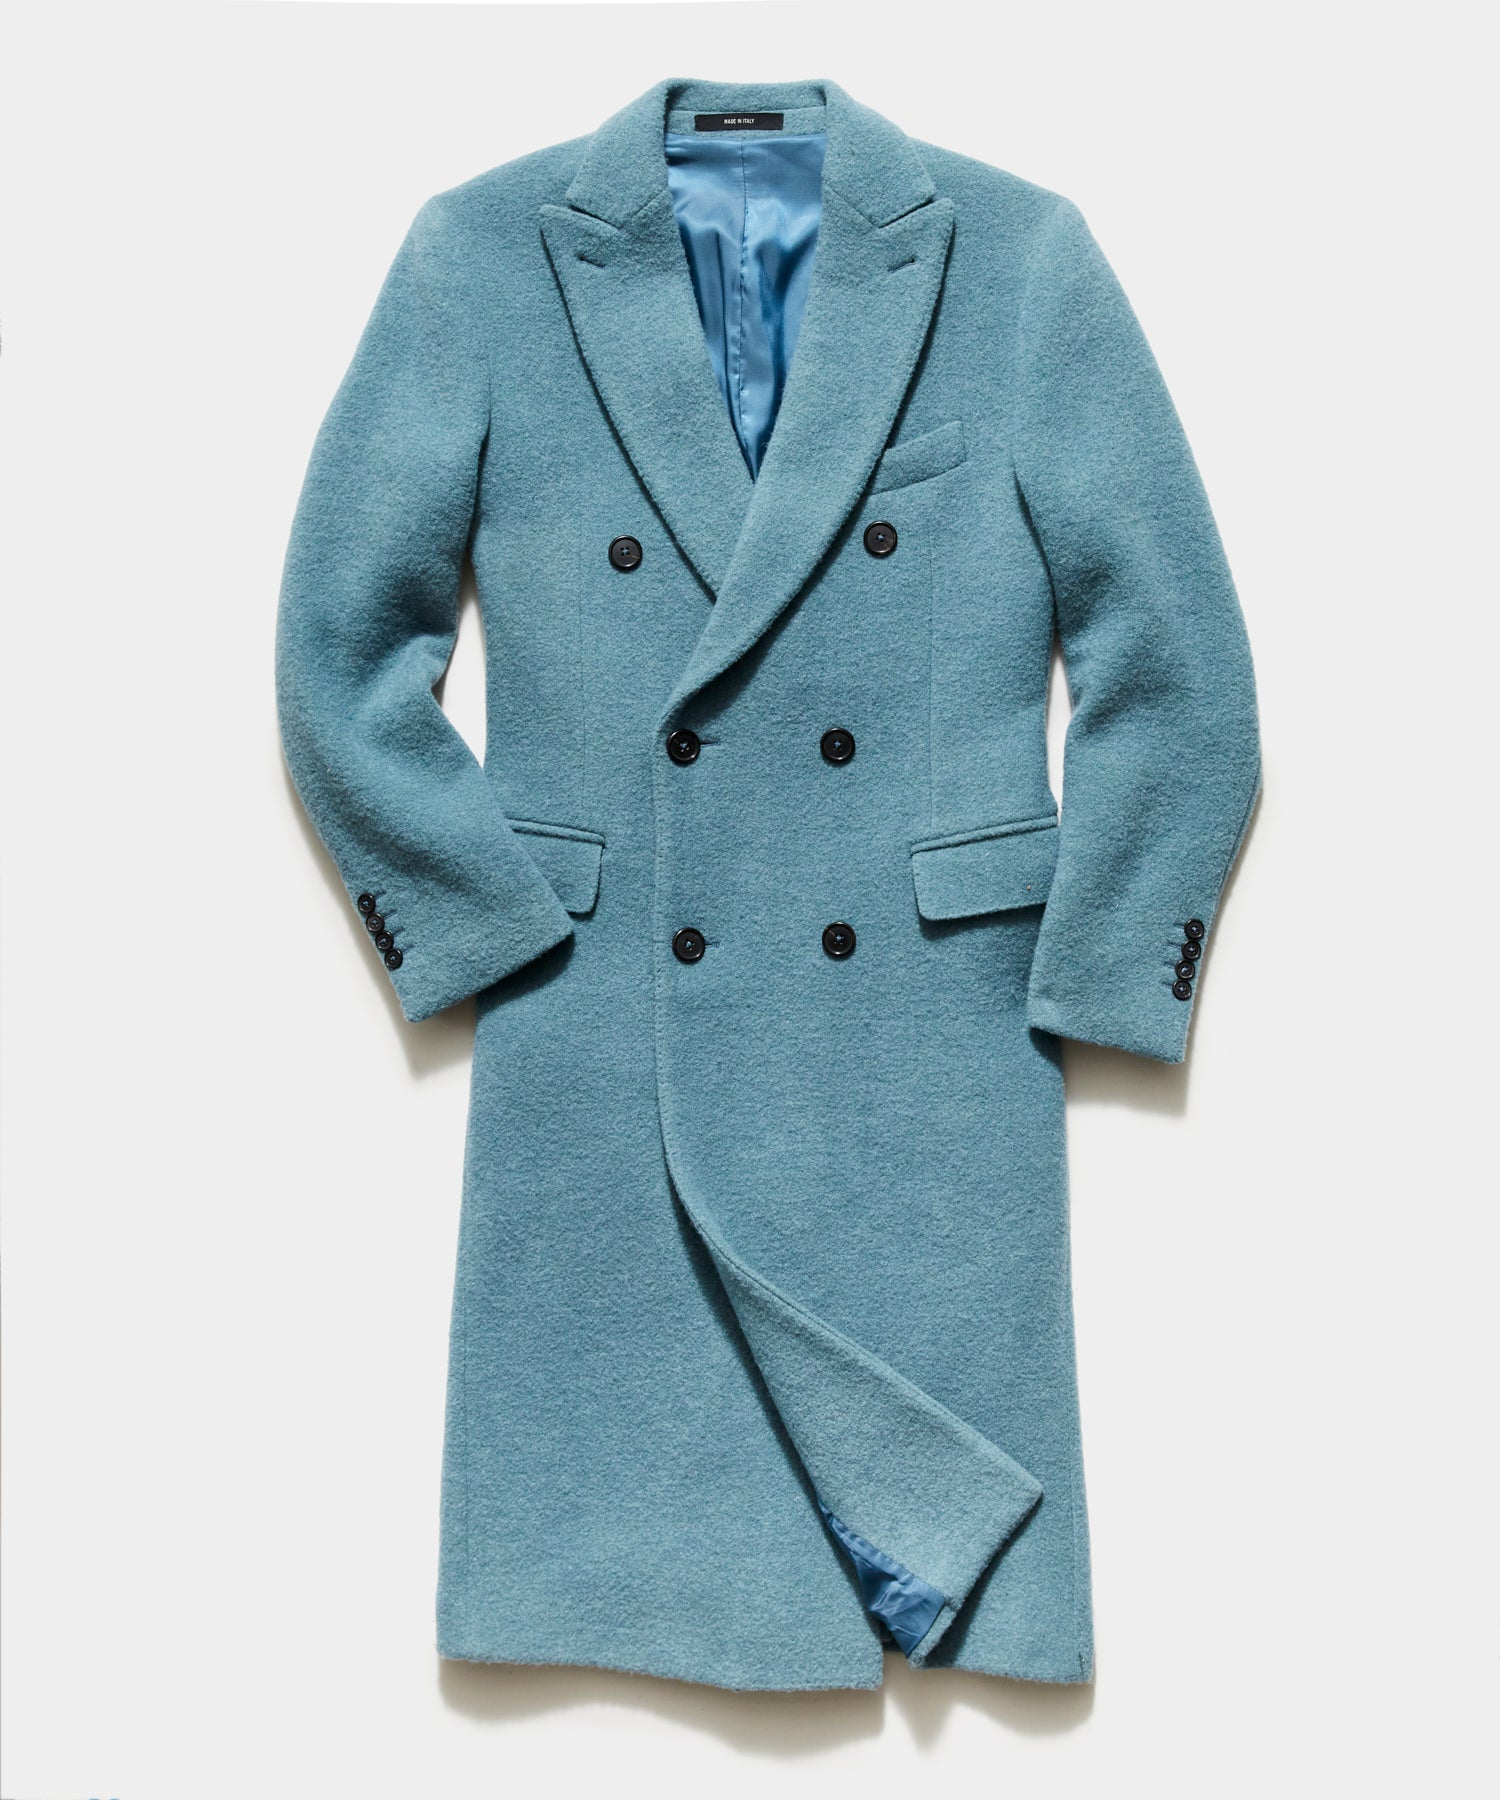 Italian Boucle Double Breasted Topcoat in Light Blue